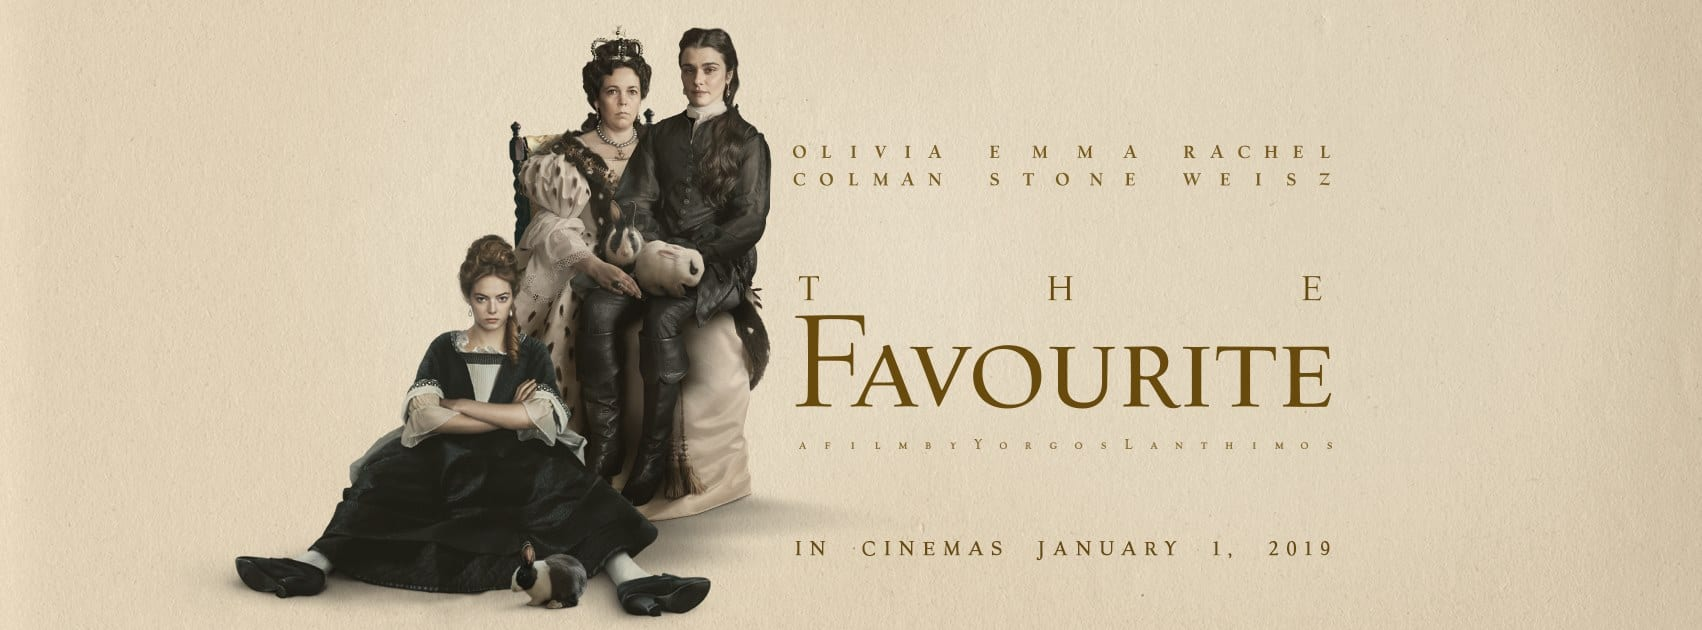 The Favourite: Netflix, DVD, Blu-ray, Digital And Amazon Prime